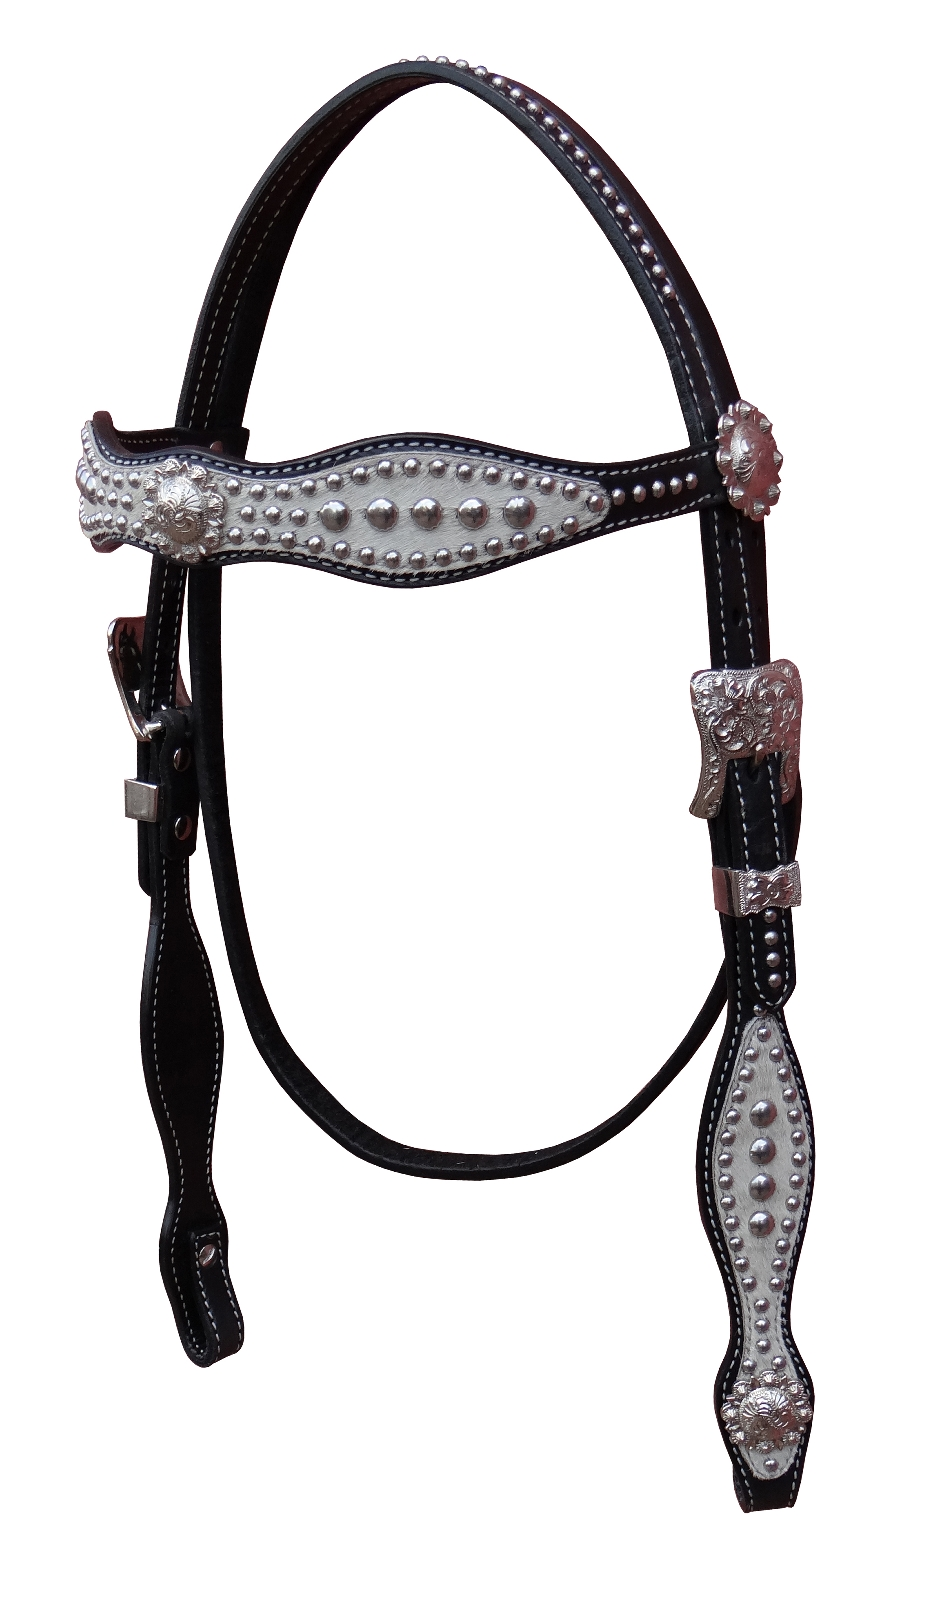 Turn-Two Equine Abilene Browband Headstall